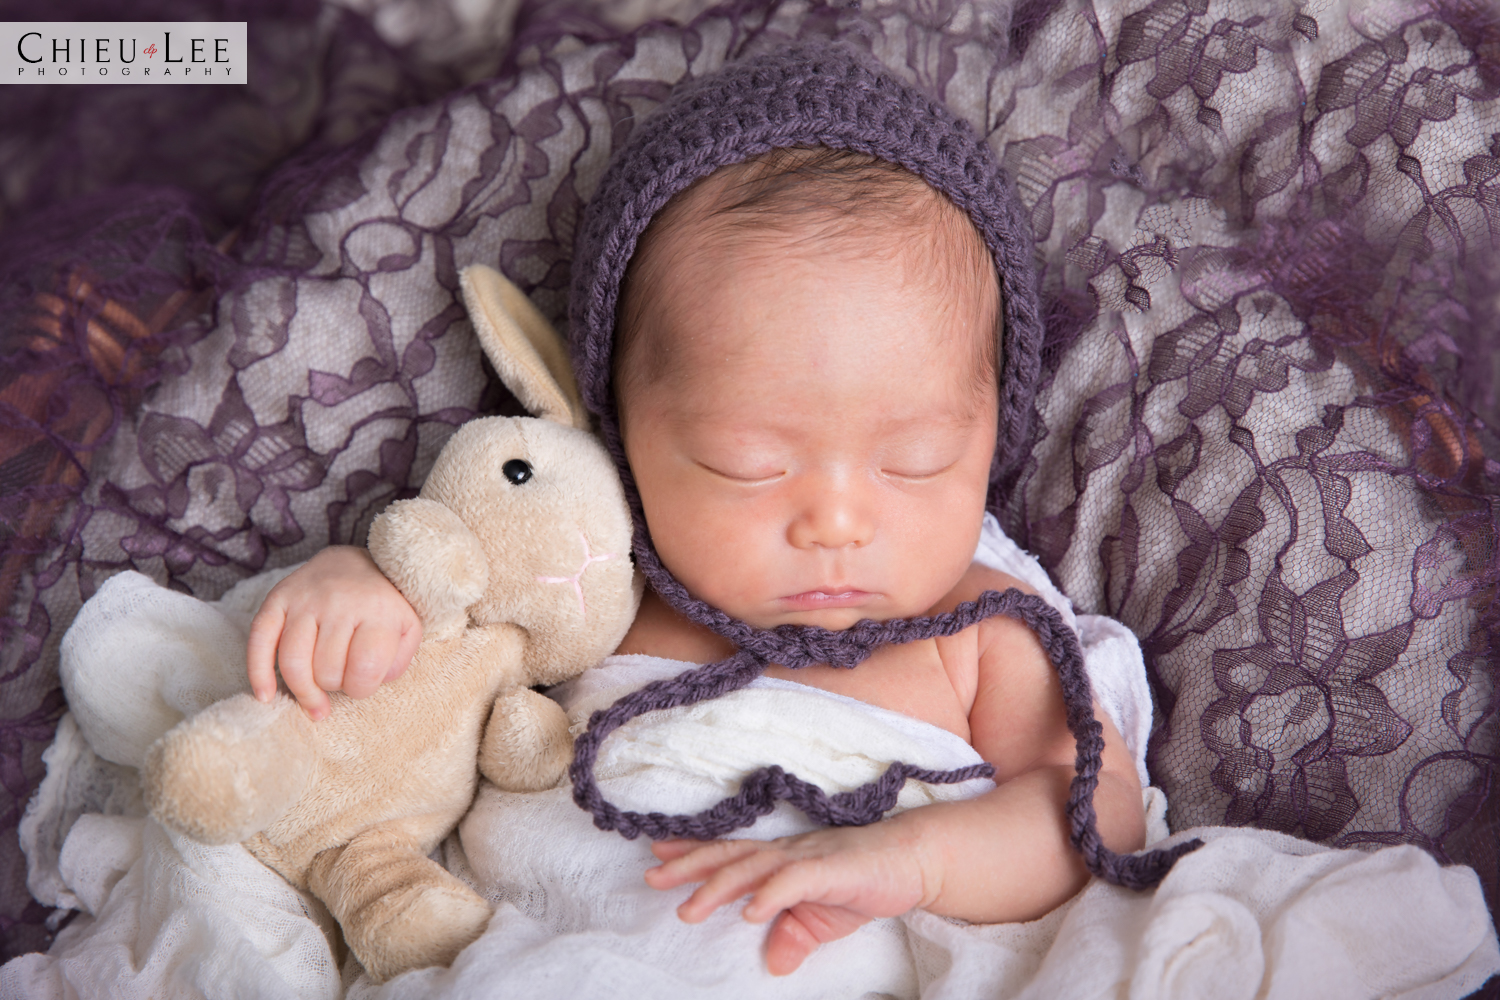 Newborn baby girl half body sleeping eyes closed purple crochet bonnet and white wrap cuddling beige plush bunny doll on purple lace and white blanket